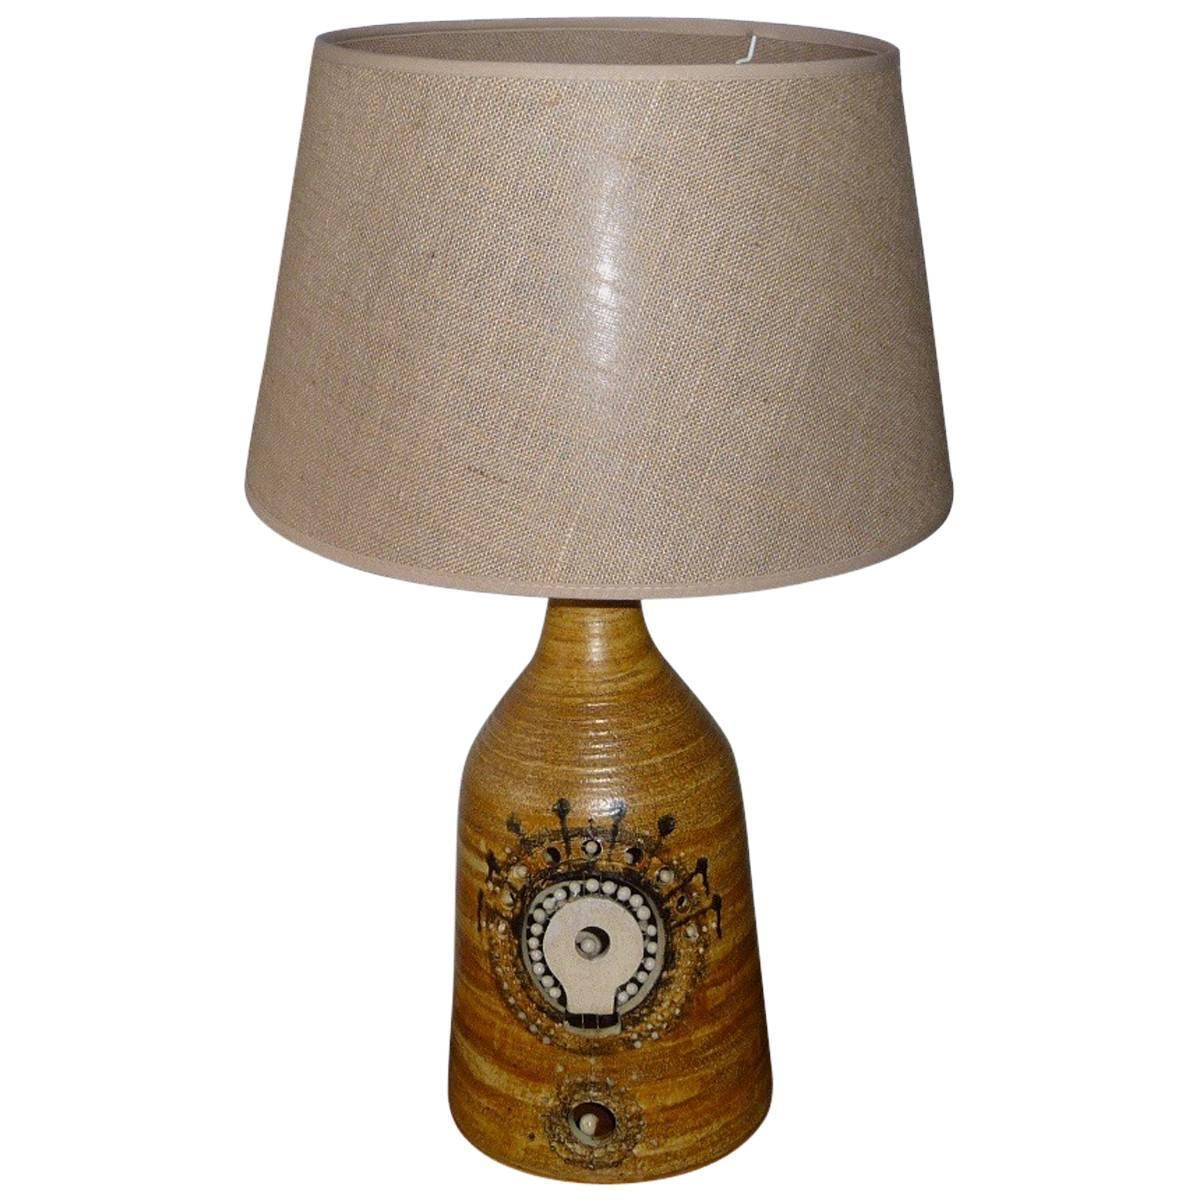 Large Lamps For Sale Georges Pelletier Large Table Lamp For Sale At 1stdibs